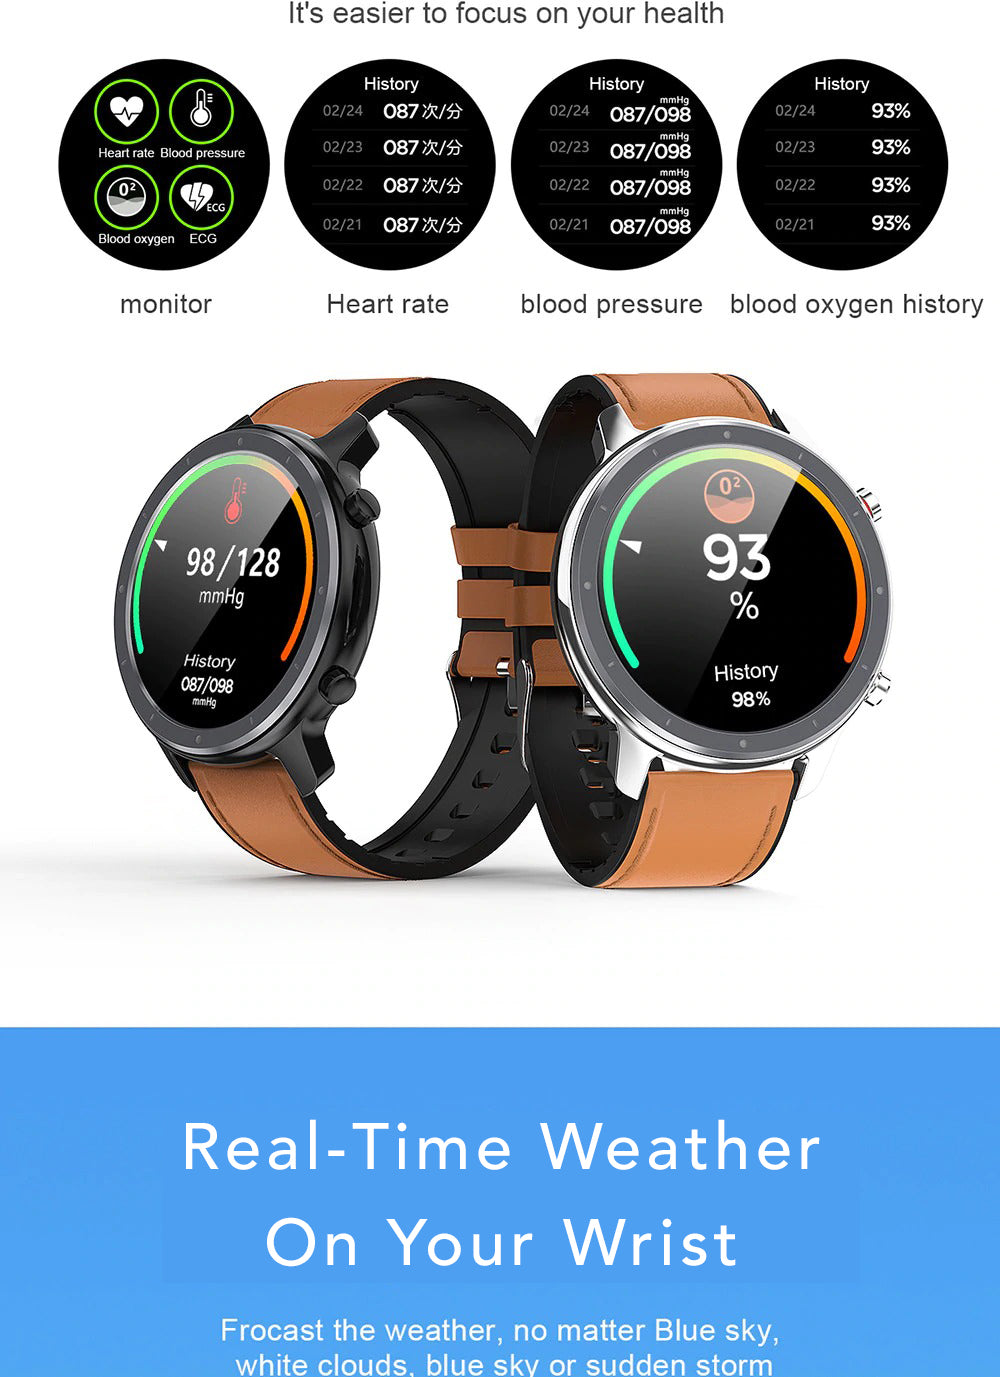 X9 Beretta Smart Watch Real Time Weather On Your Wrist